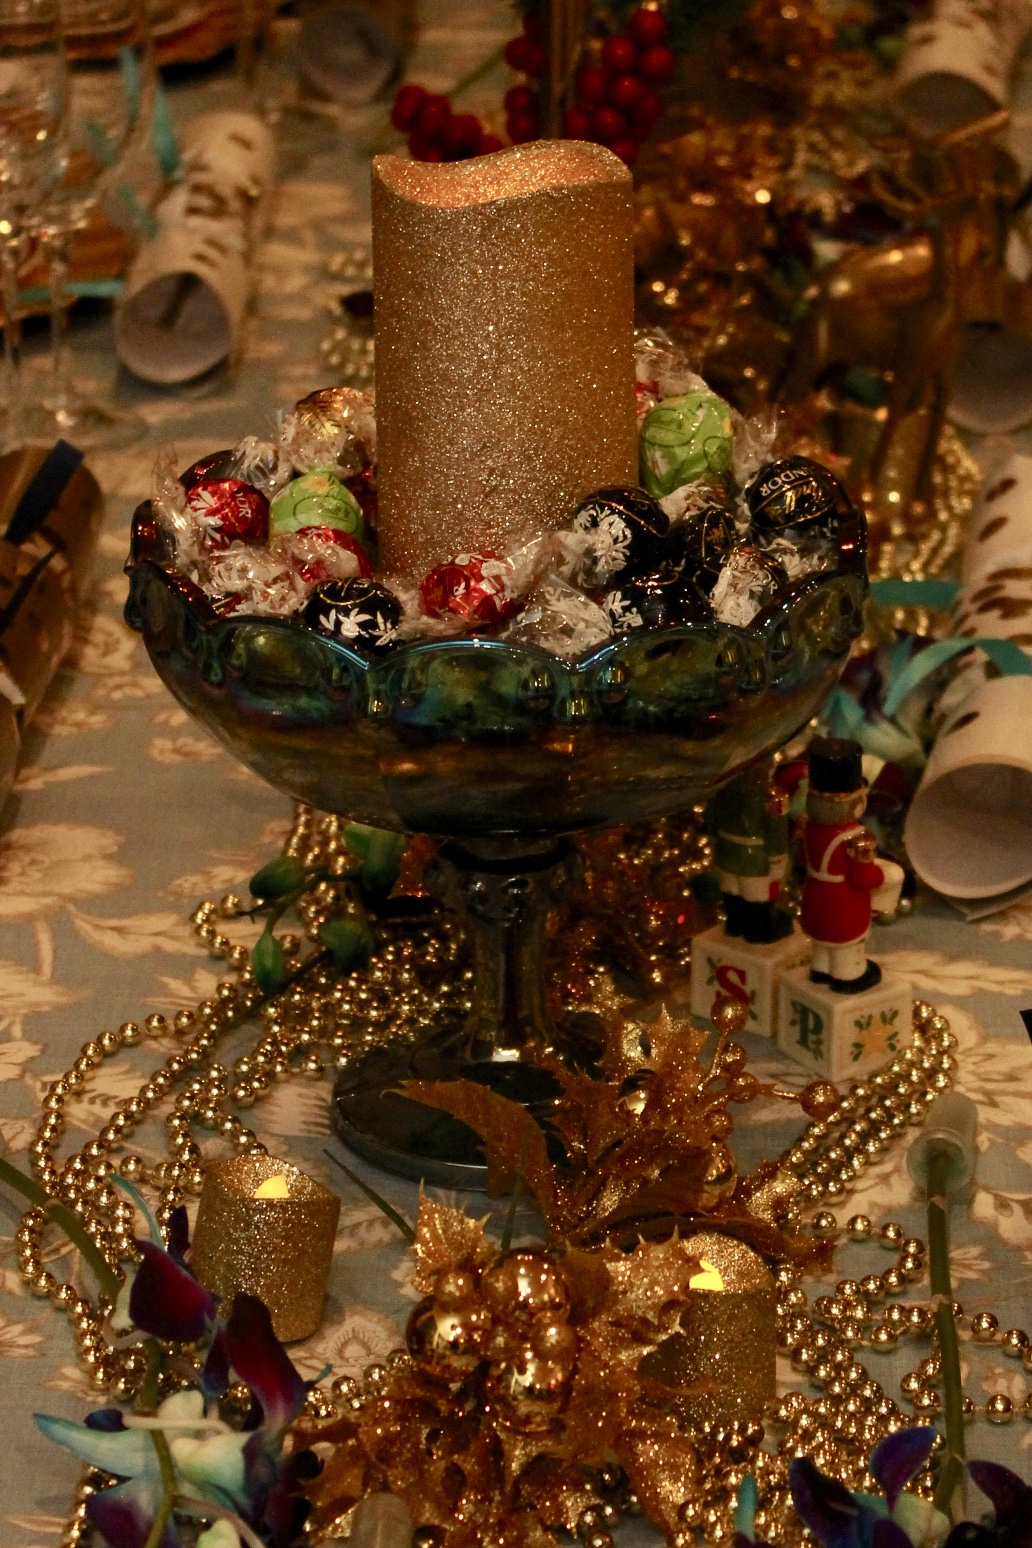 Use lots of gold beads to decorate the table